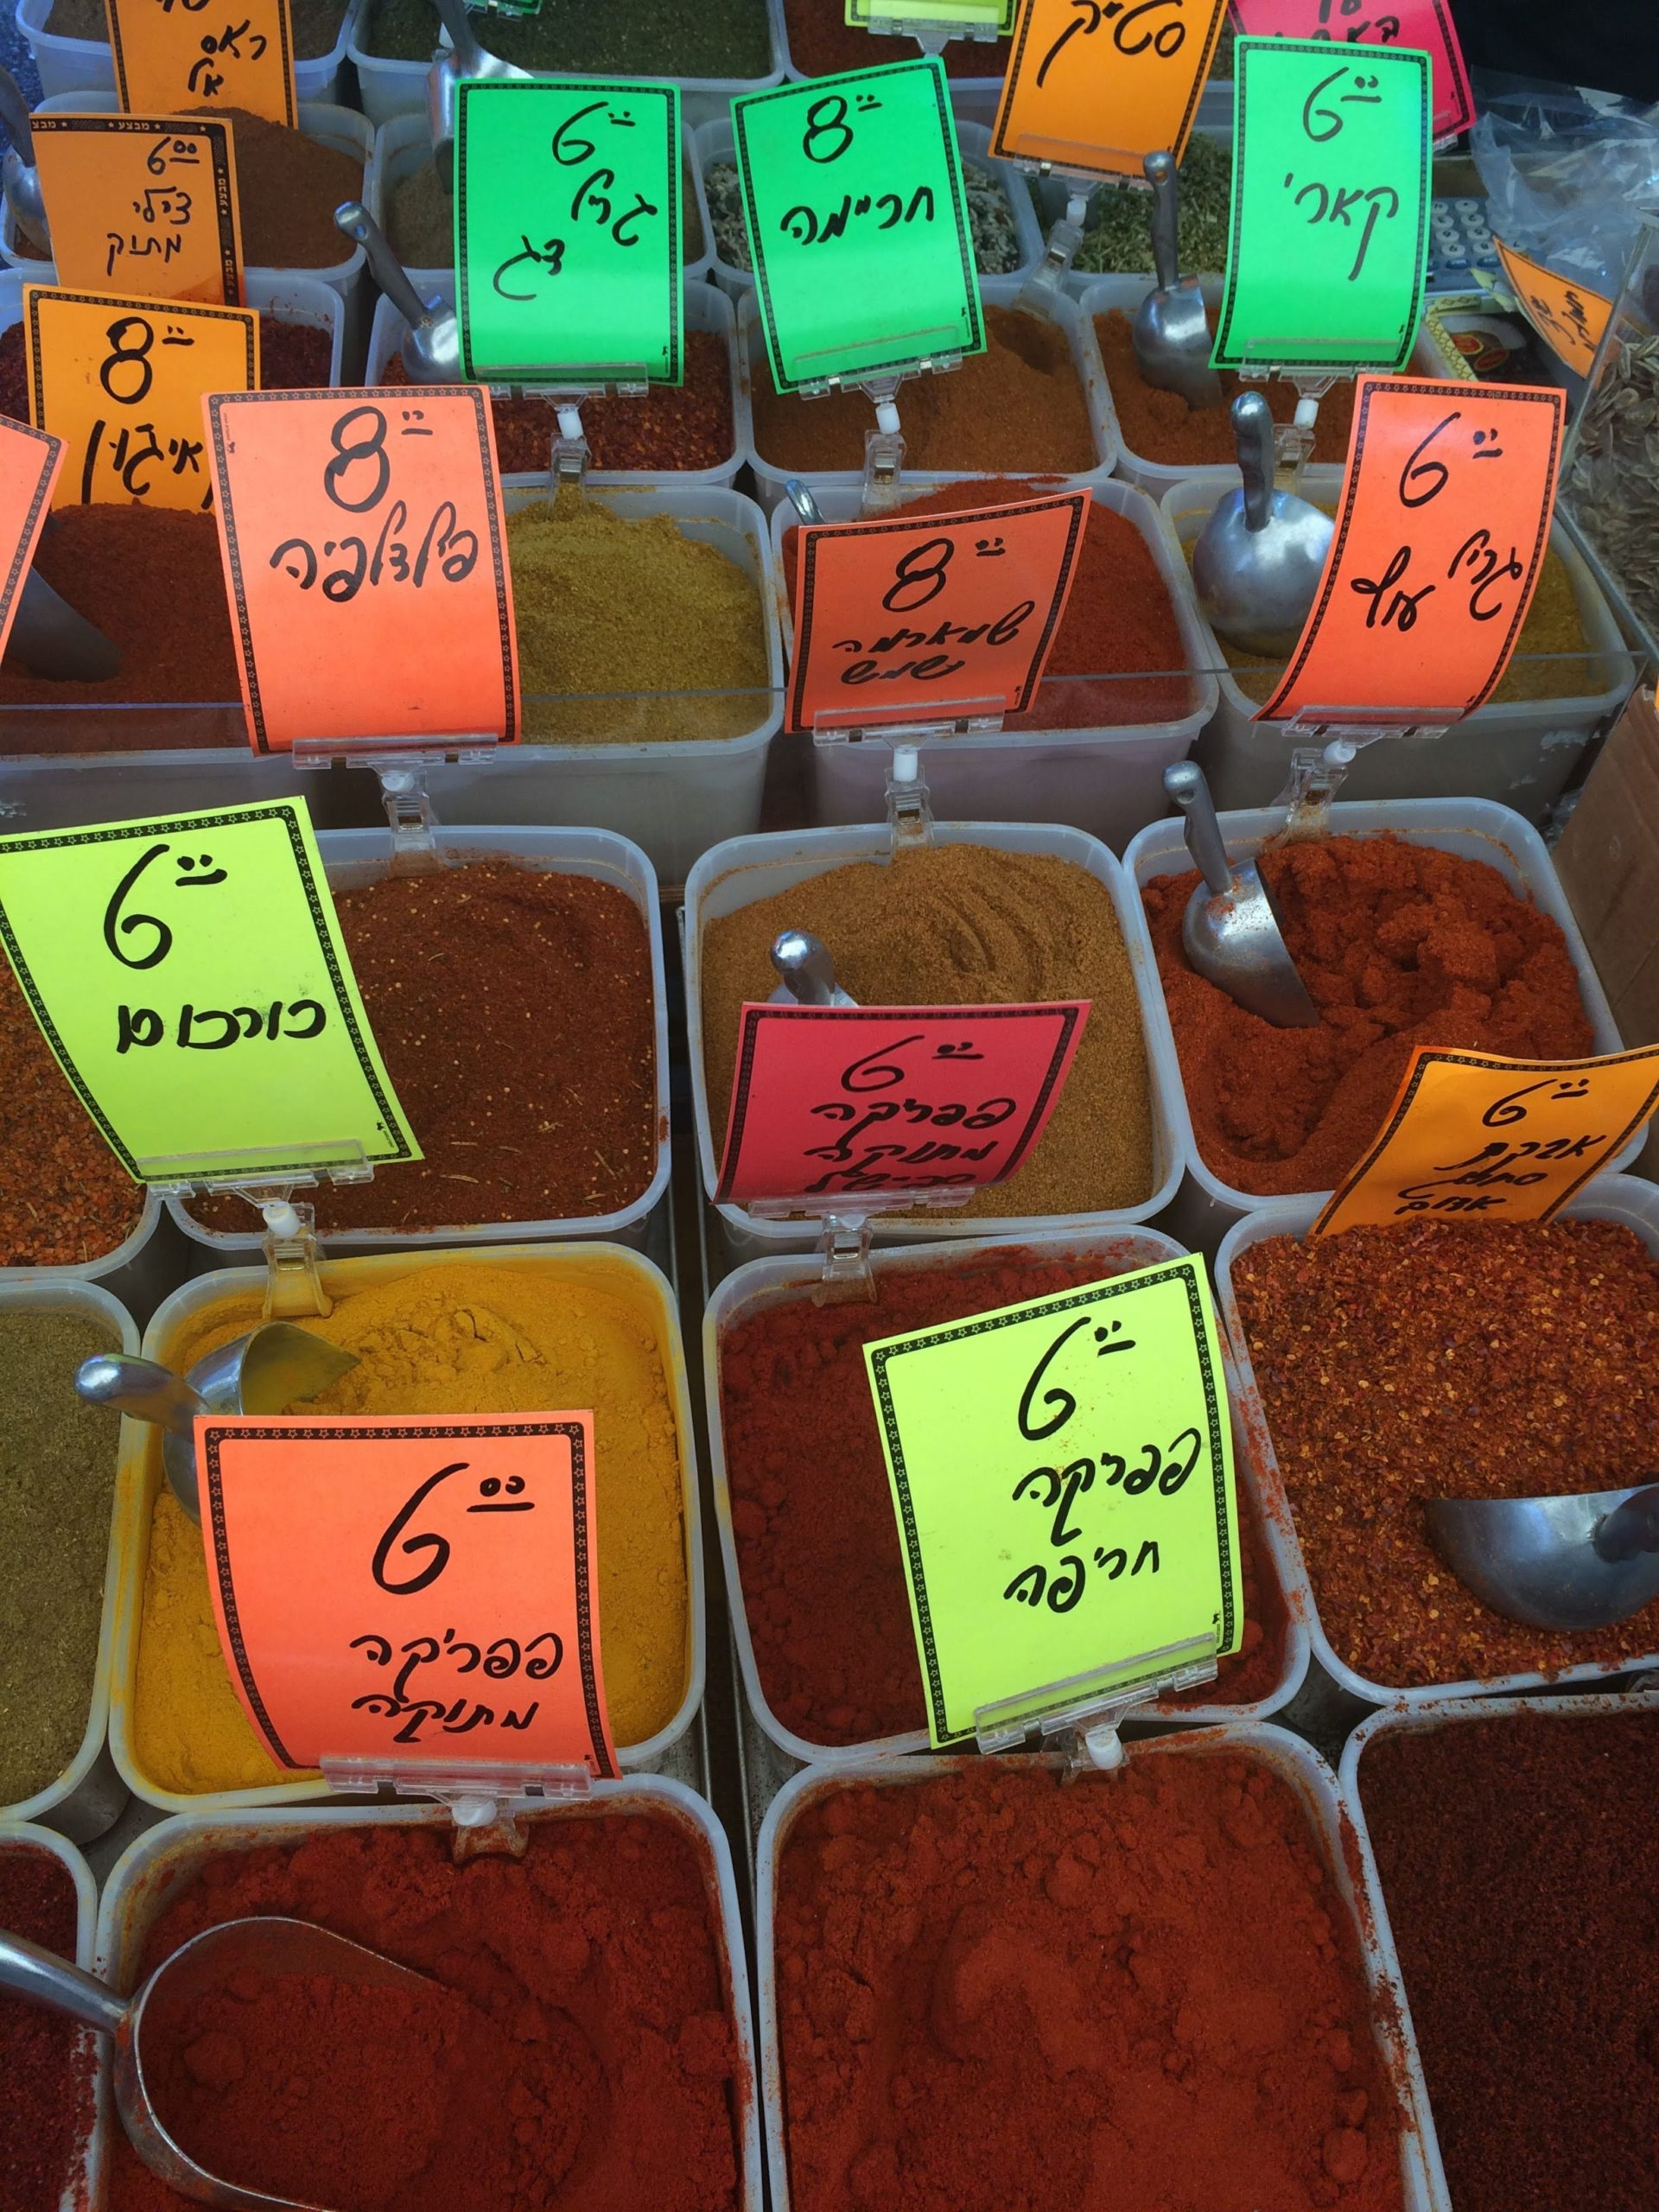 Spices in Carmel market in Tel Aviv